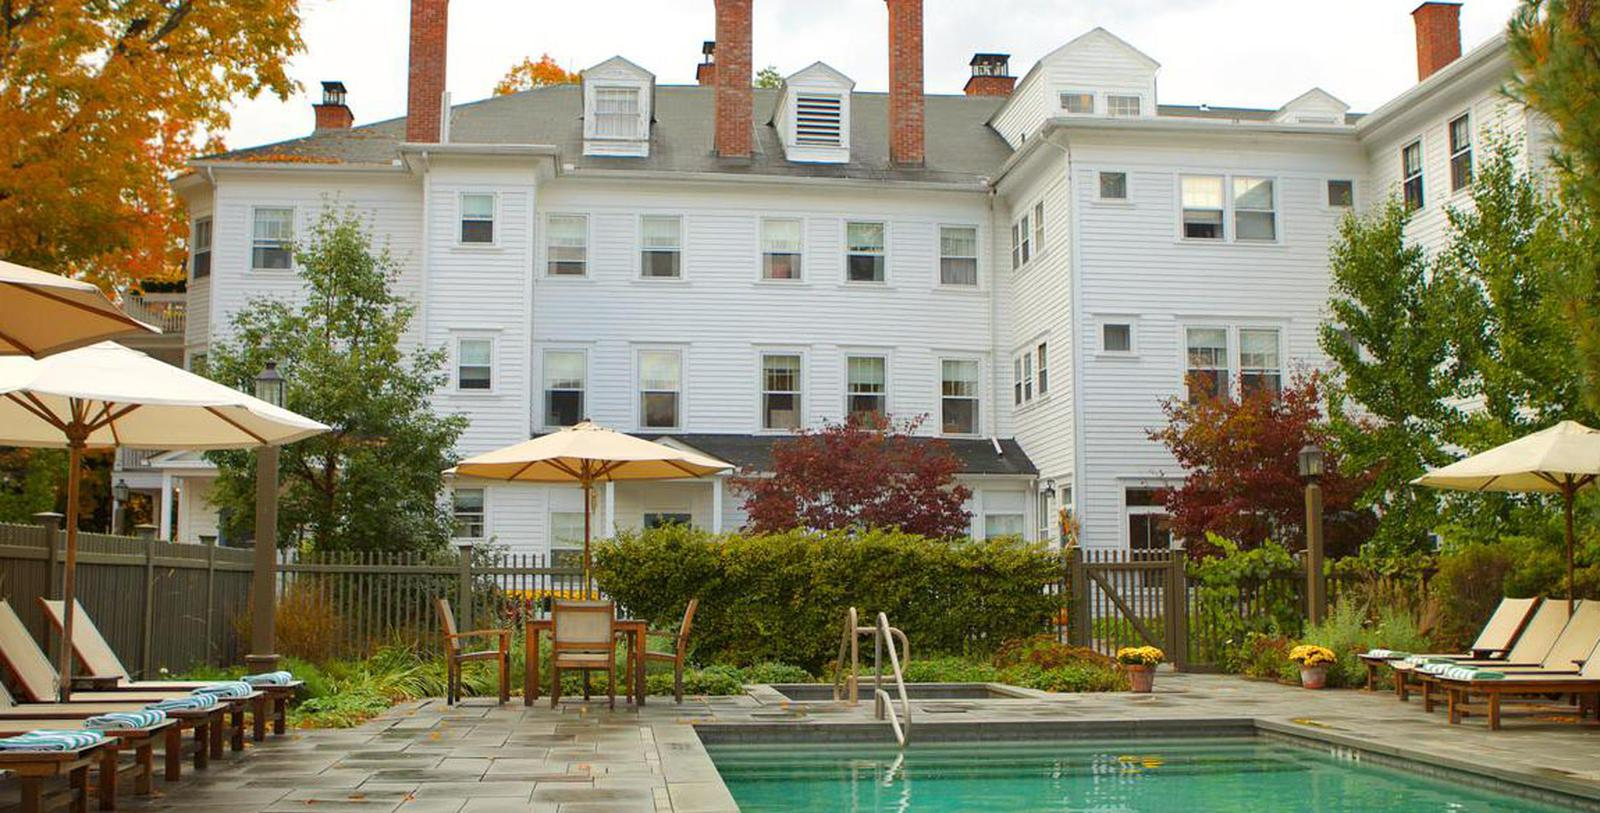 Image of Outdoor Pool and Hot Tub at The Red Lion Inn, 1773, Member of Historic Hotels of America, in Stockbridge, Massachusetts, Hot Deals